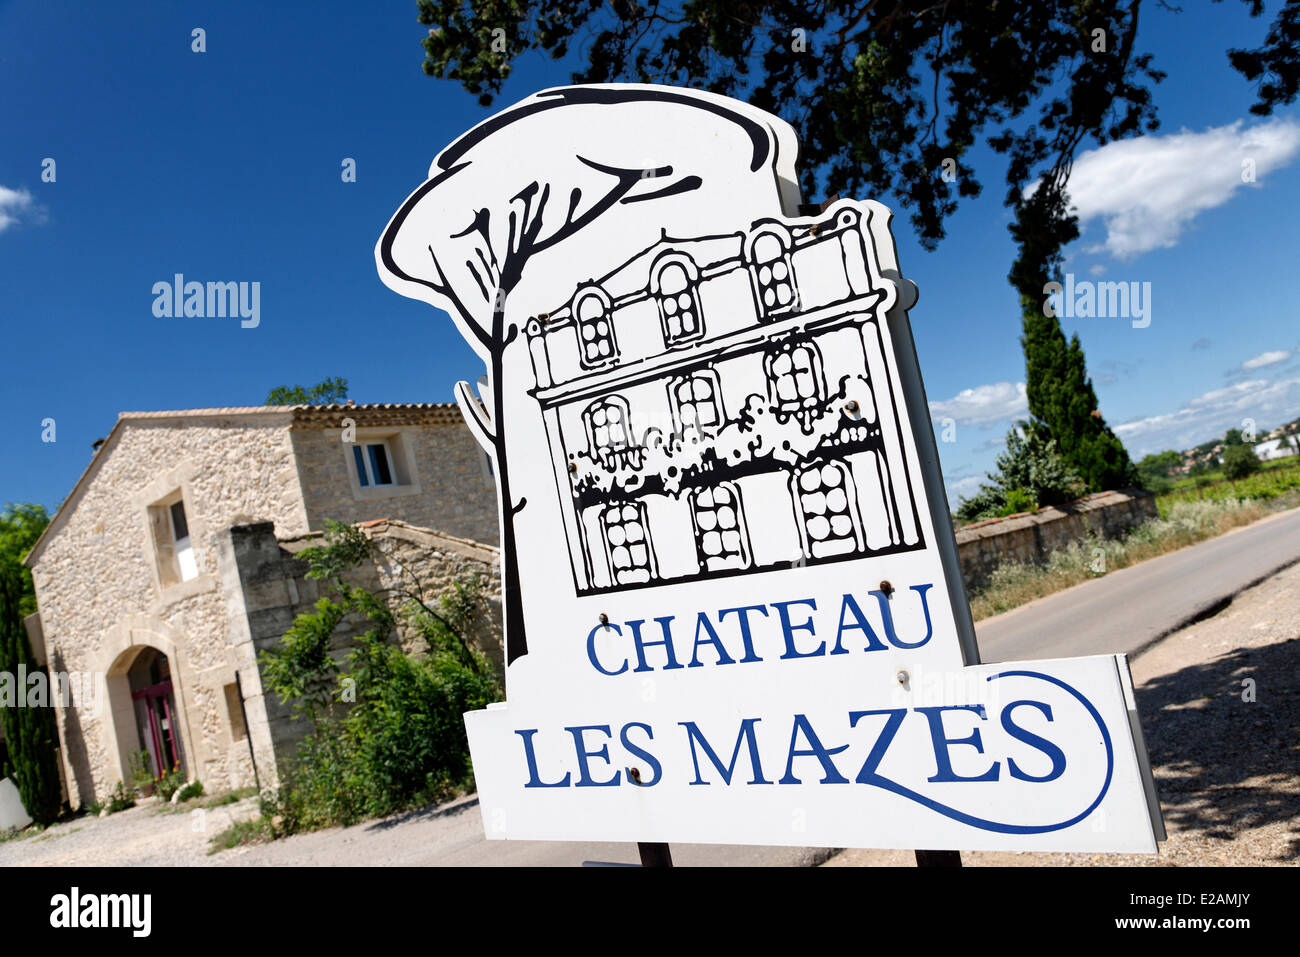 France, Herault, Saint Aunes, Chateau les Mazes domain, sign of a vineyard - Stock Image